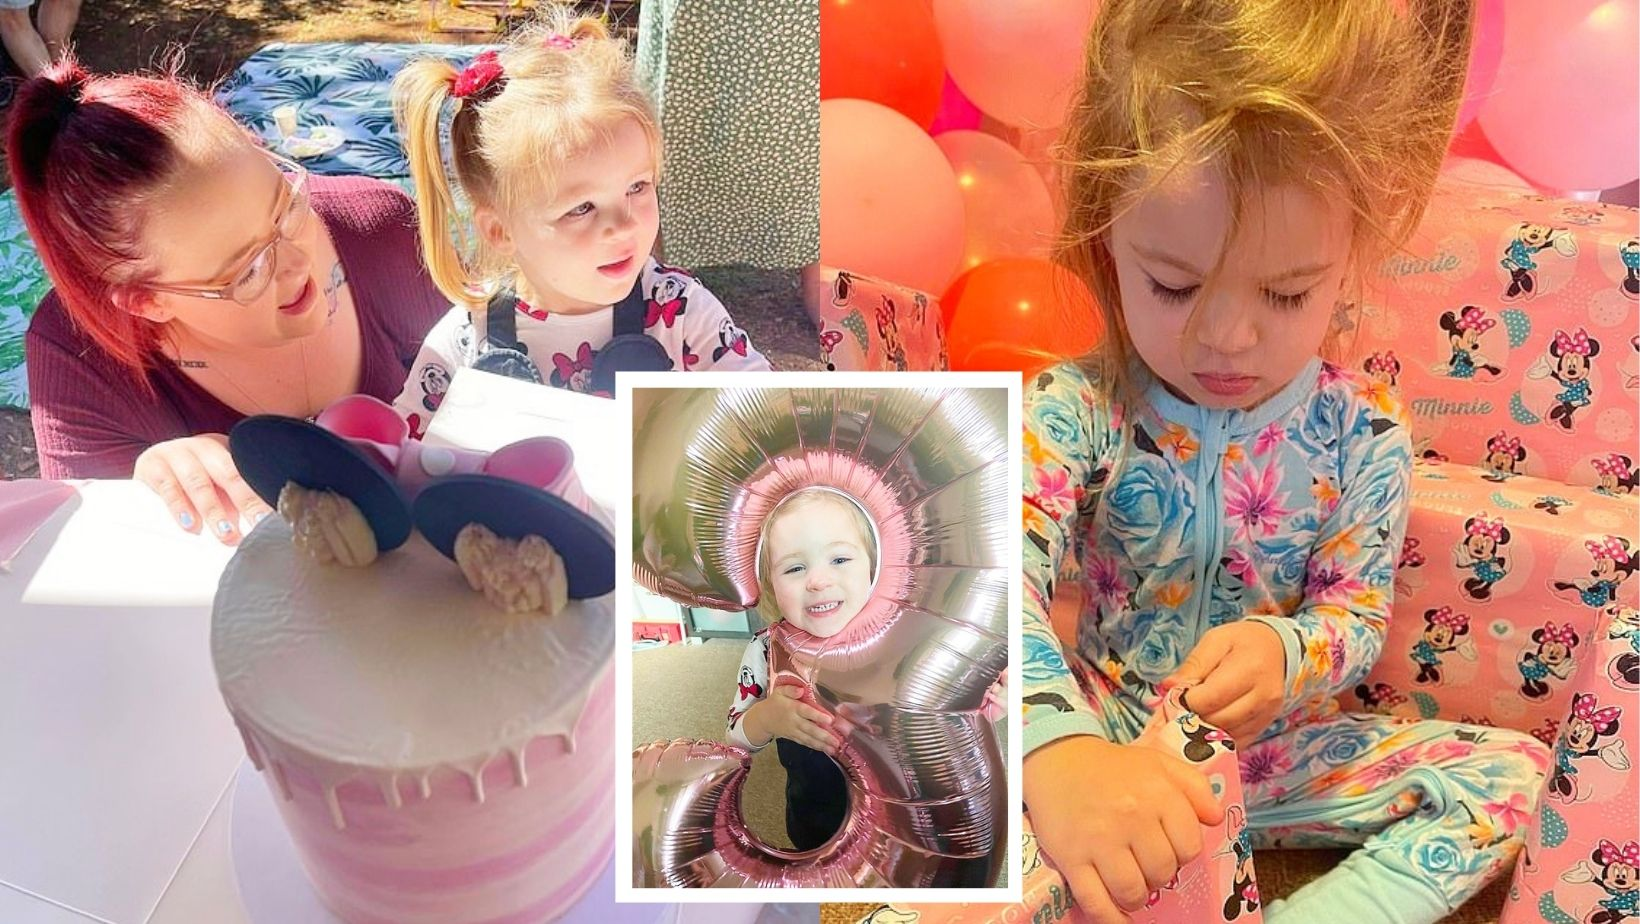 1 52.jpg - Mom Shares How Strangers Saved Her Daughter's 3rd Birthday Party After Invited Friends Cancelled The Last Minute